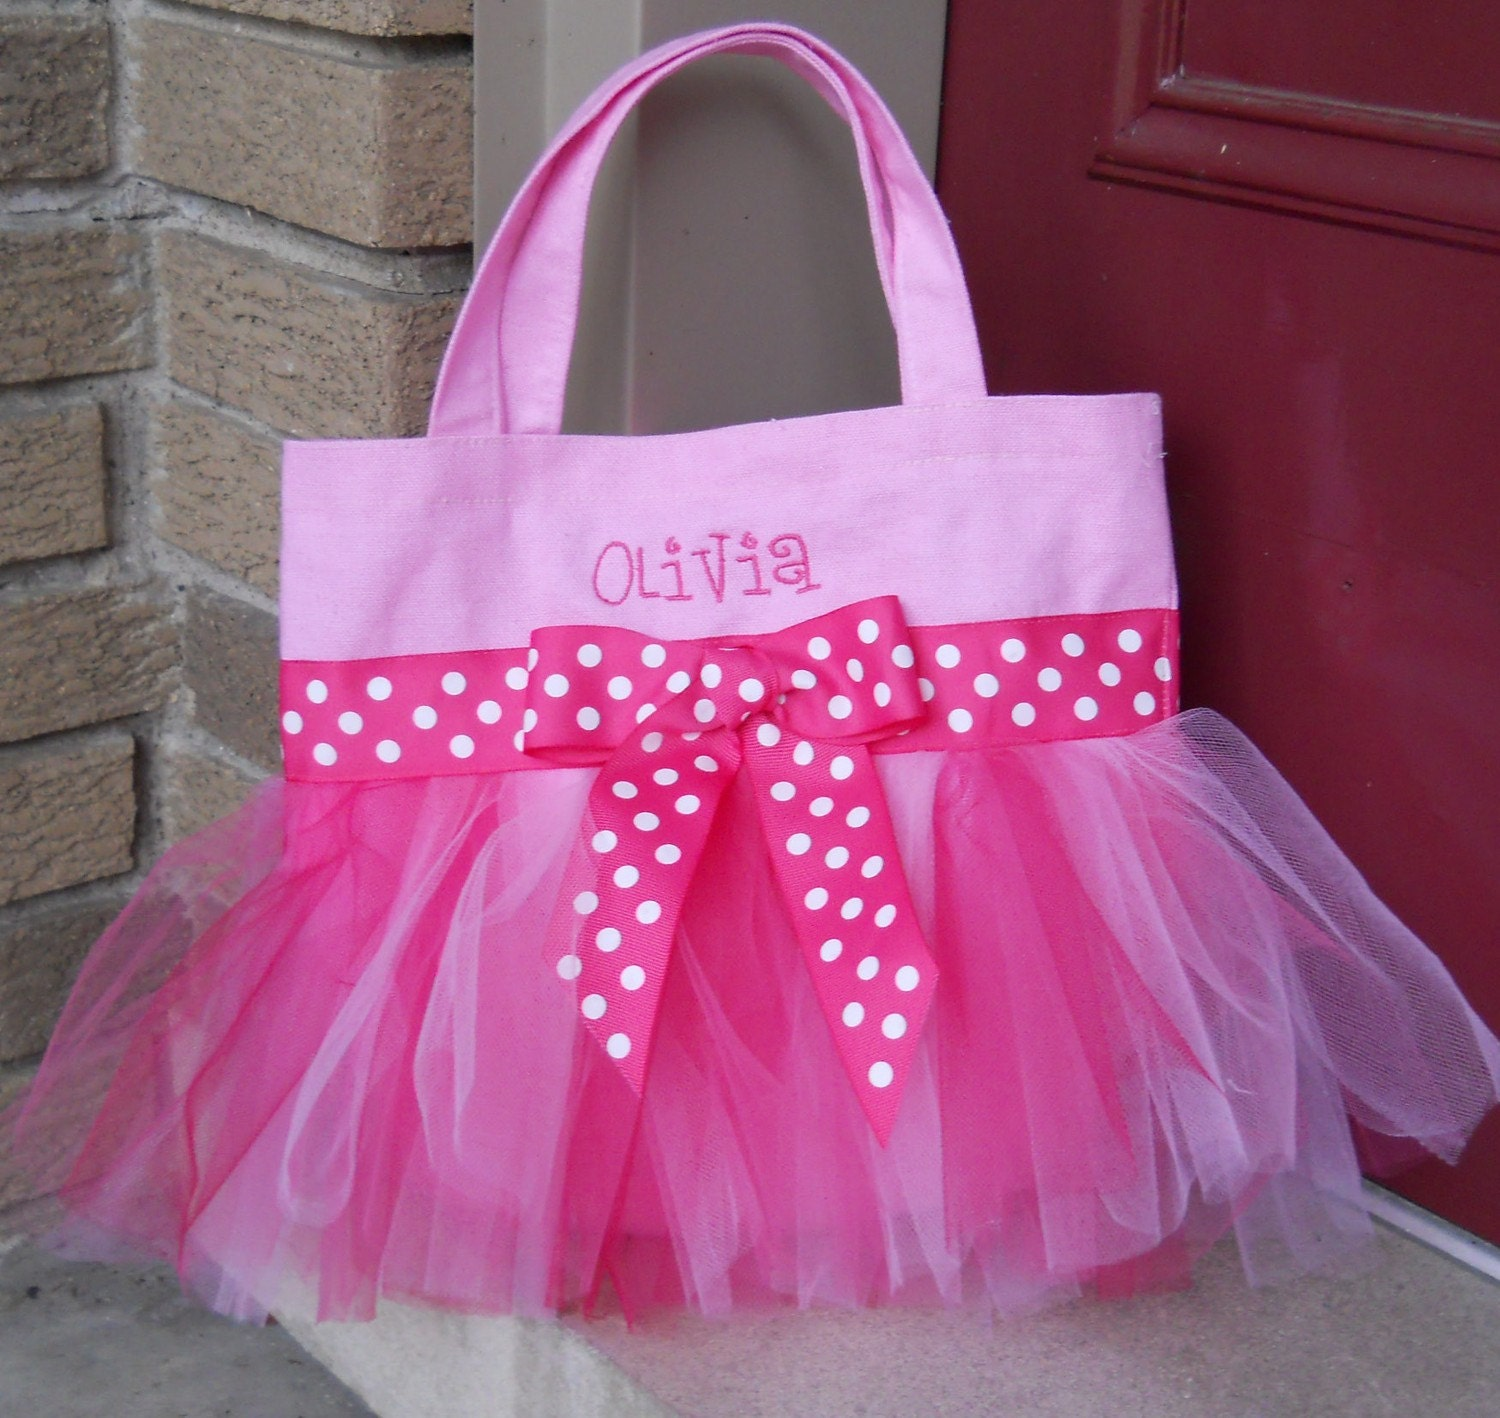 Create your own custom dance bags at Customized Girl. Add a name (or other text) and art to our Personalized Dance Duffel Bags. Custom Dance Bags, Ballet Bags, Duffels, Backpacks, & More Filter. Search These Designs Shop Templates. Sports & Fitness. Little Girl Ballerina Custom Dance. $ Canvas Bargain Tote Bag. Cute Dance Bags For.